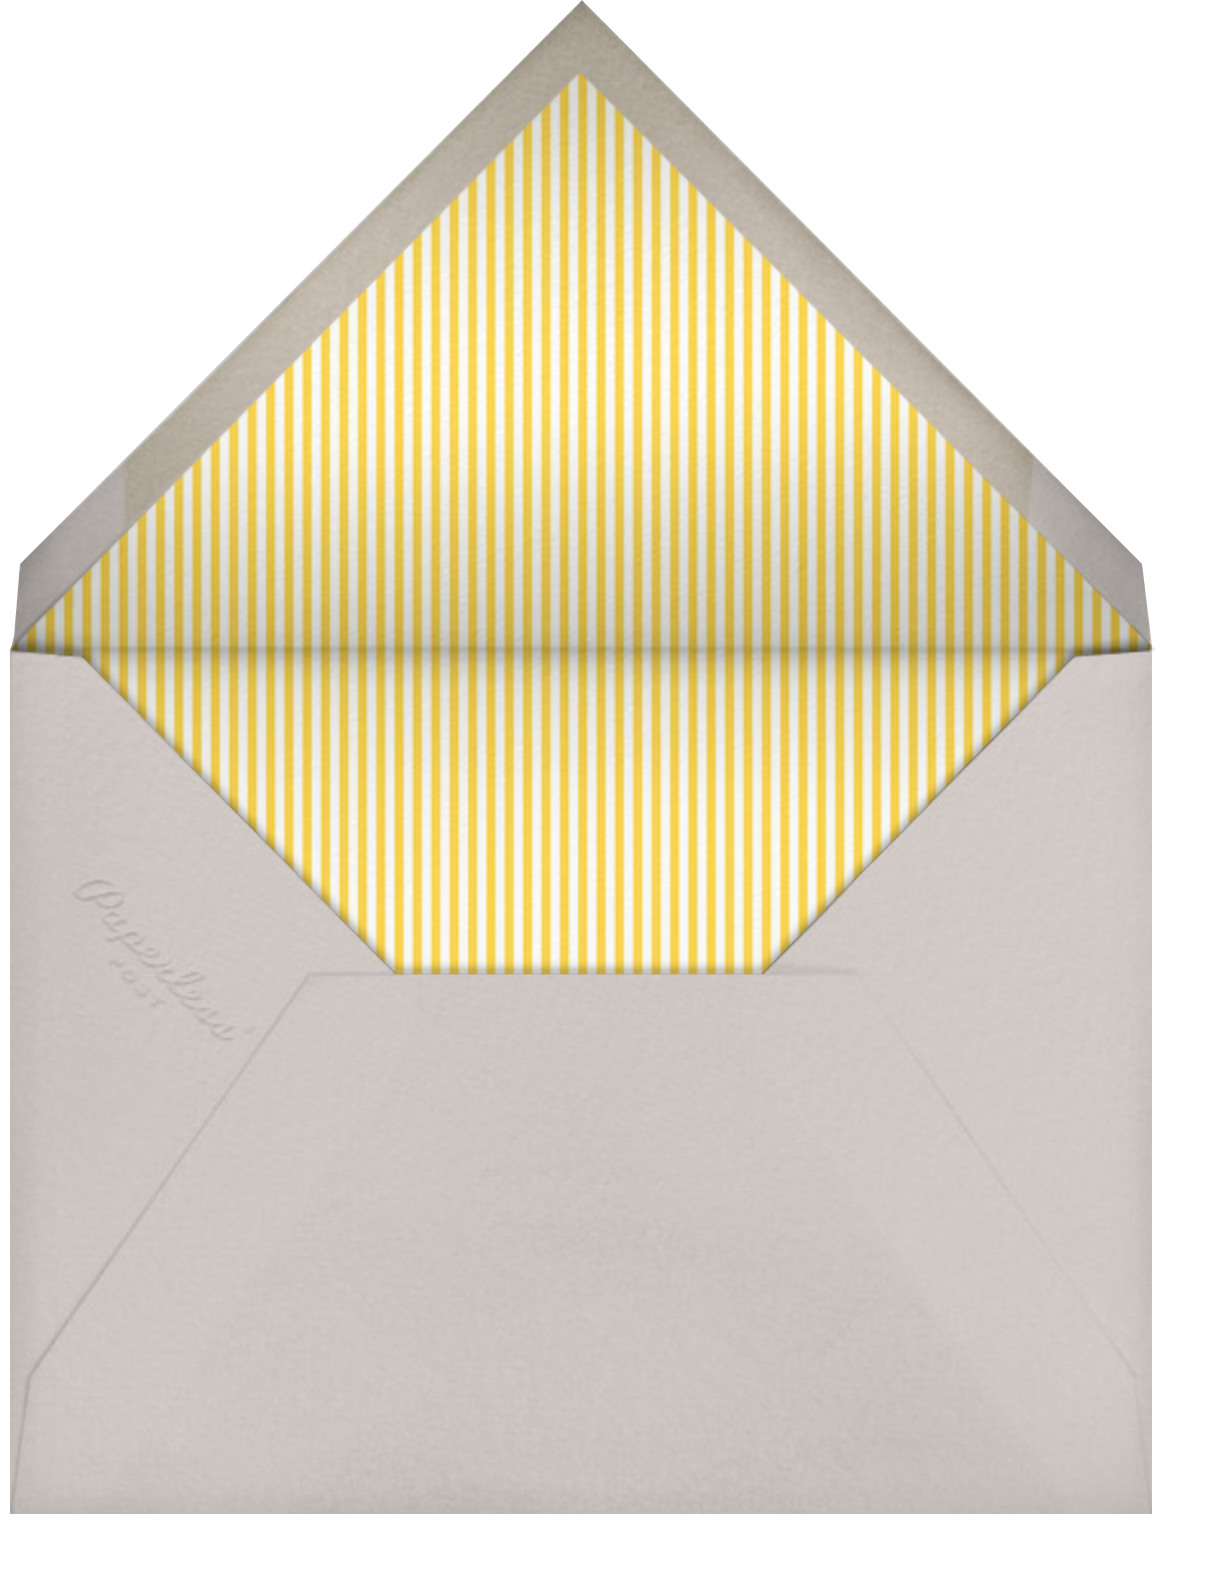 Ellie's Balloon (Stationery) - Yellow - Little Cube - Kids' stationery - envelope back